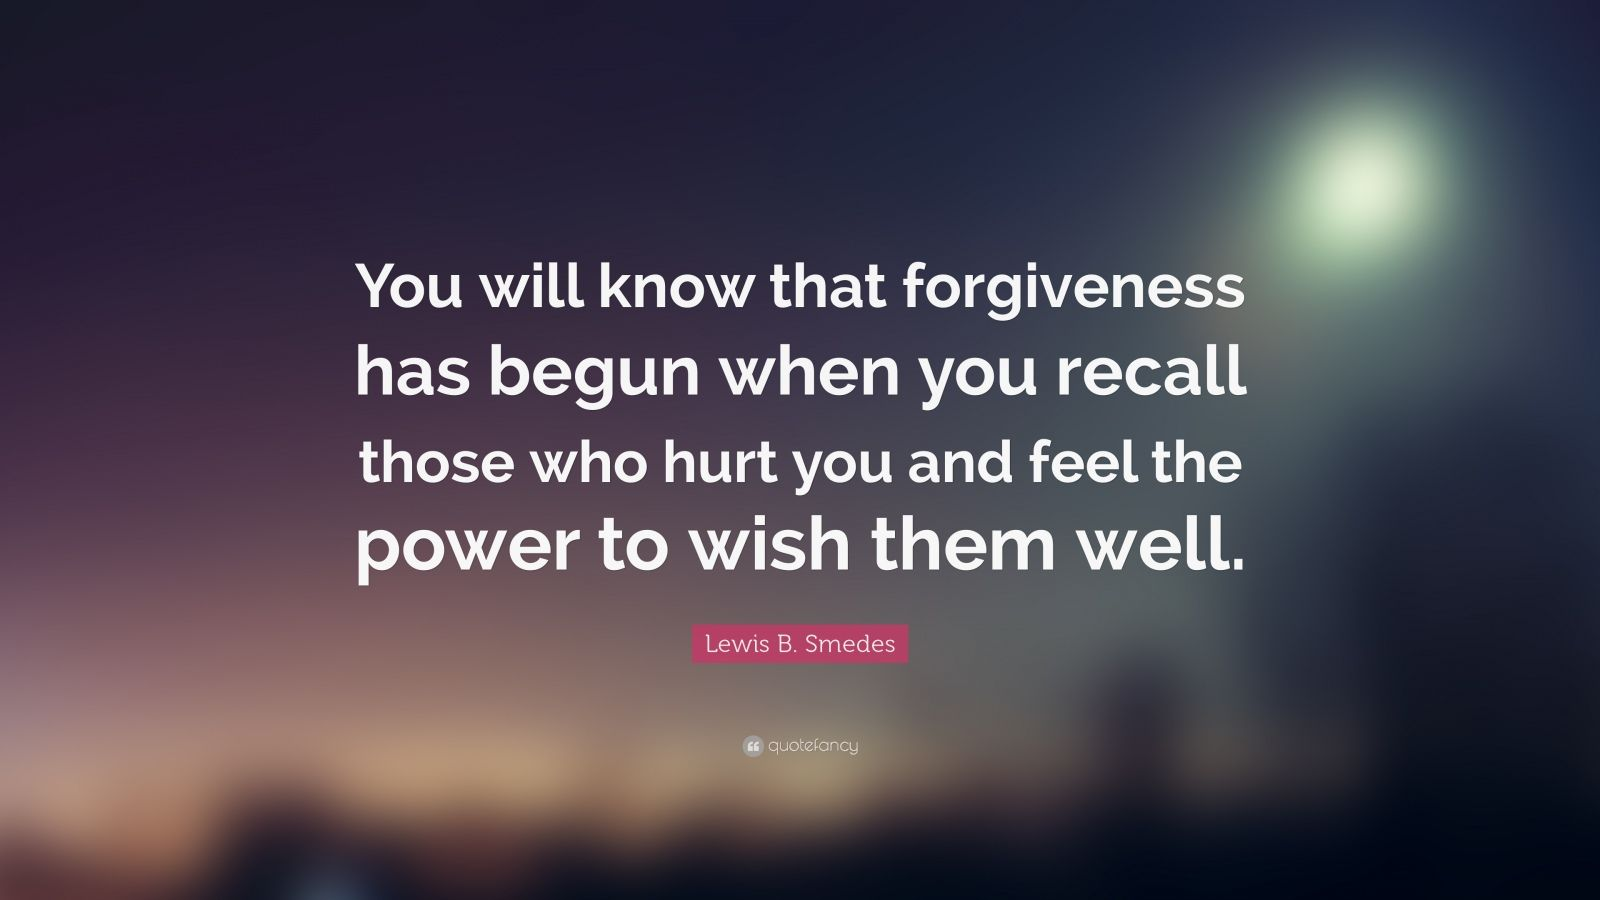 """Lewis B. Smedes Quote: """"You will know that forgiveness has begun when you recall those who hurt you and feel the power to wish them well."""""""